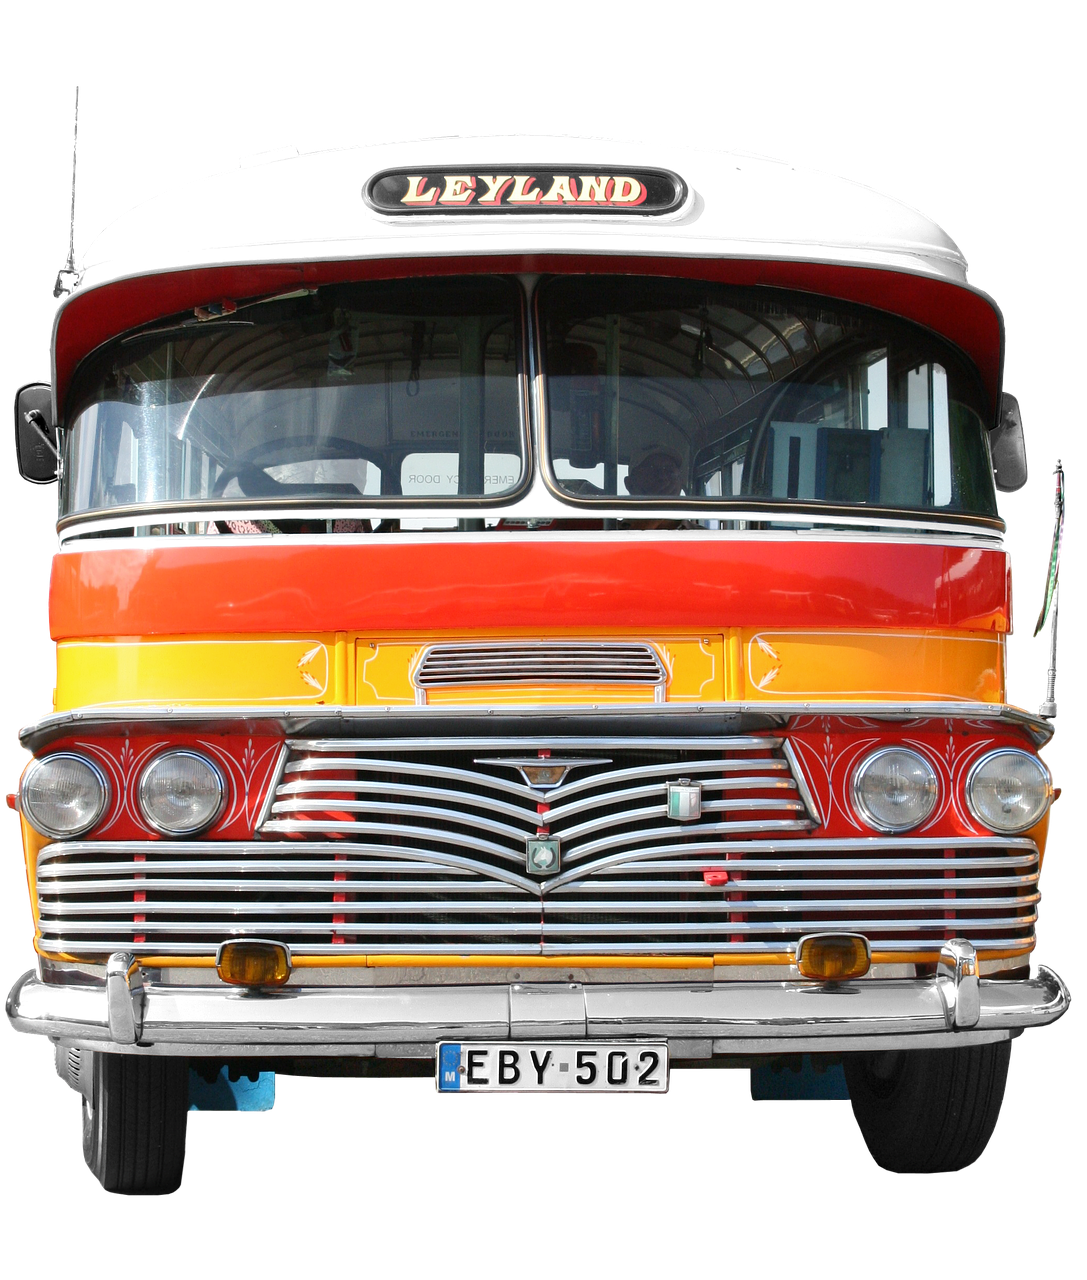 leyland bus transport and traffic free photo